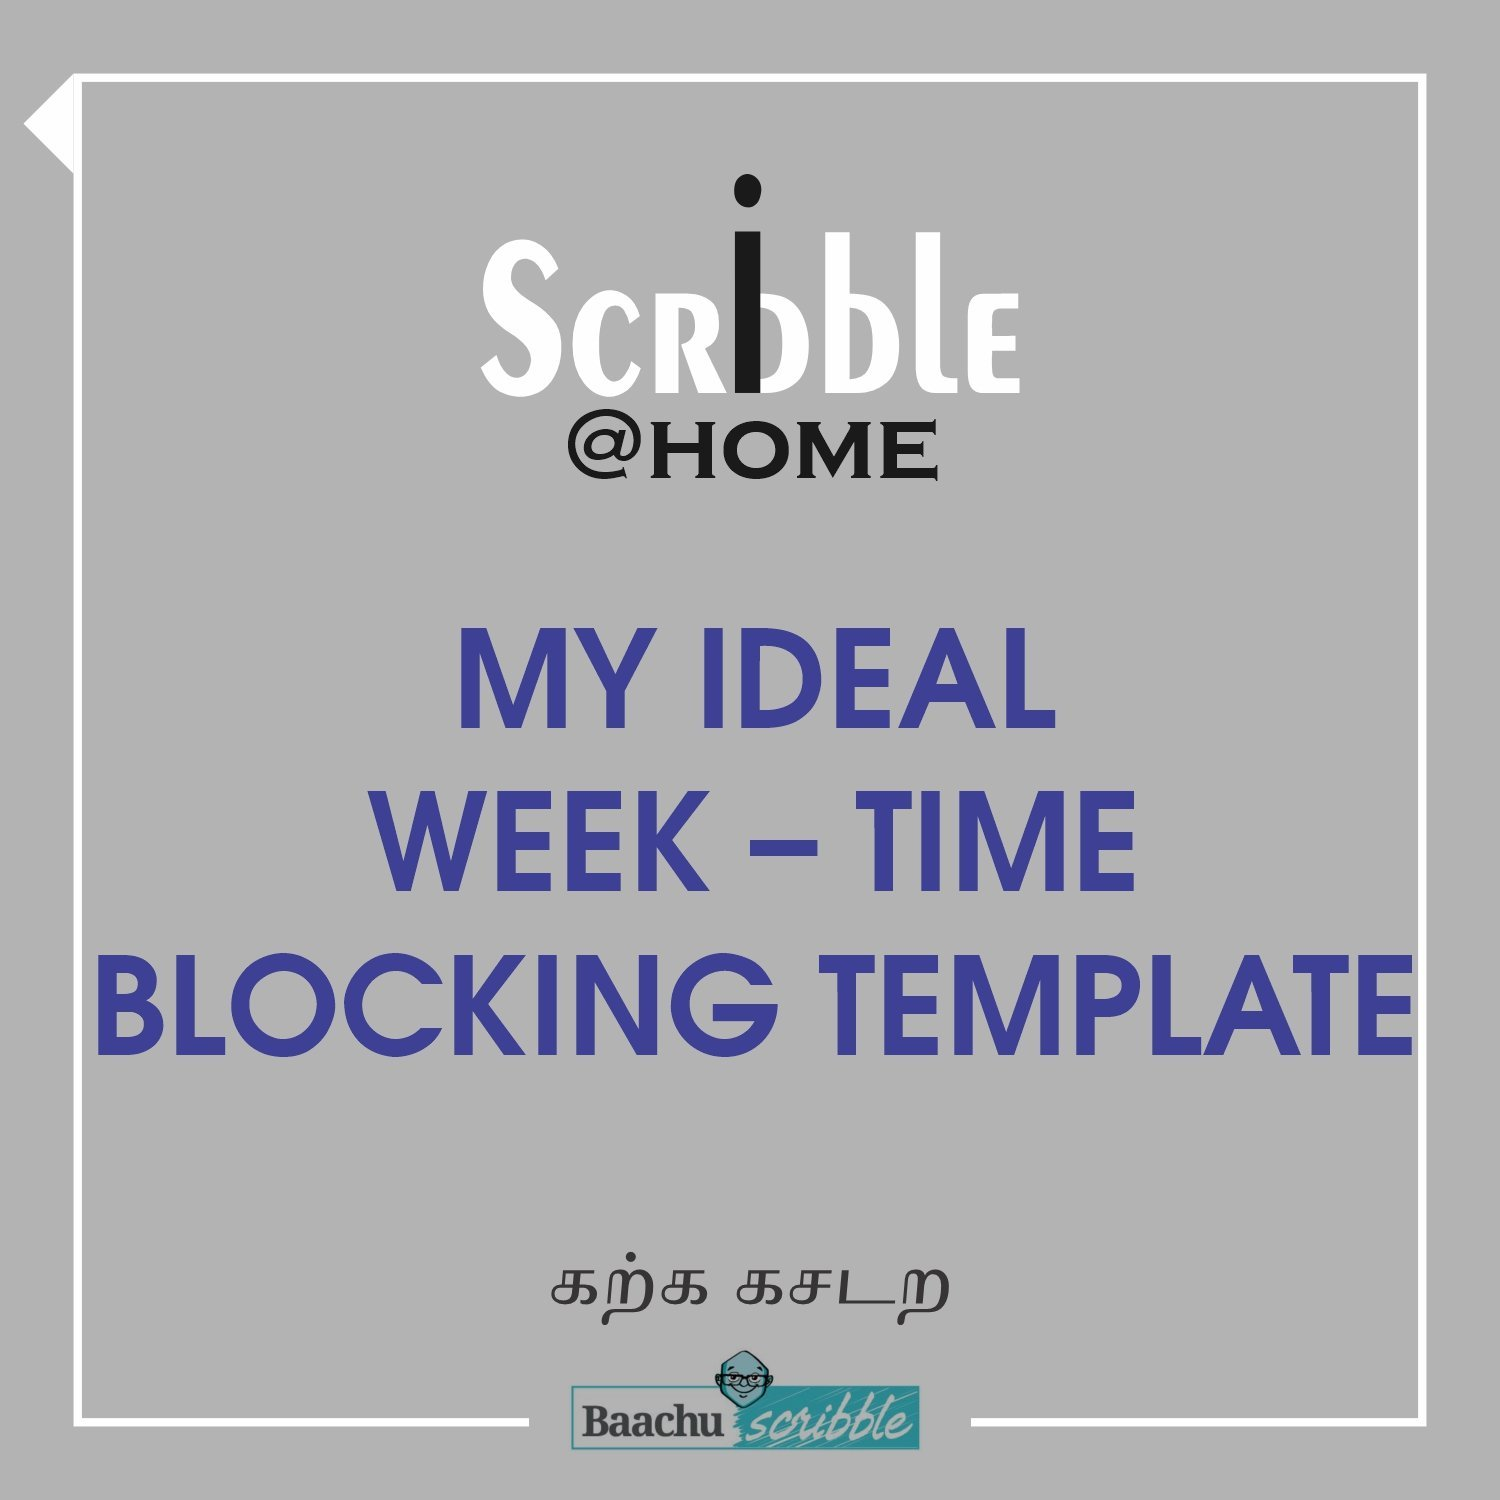 My Ideal Week – Time Blocking Template